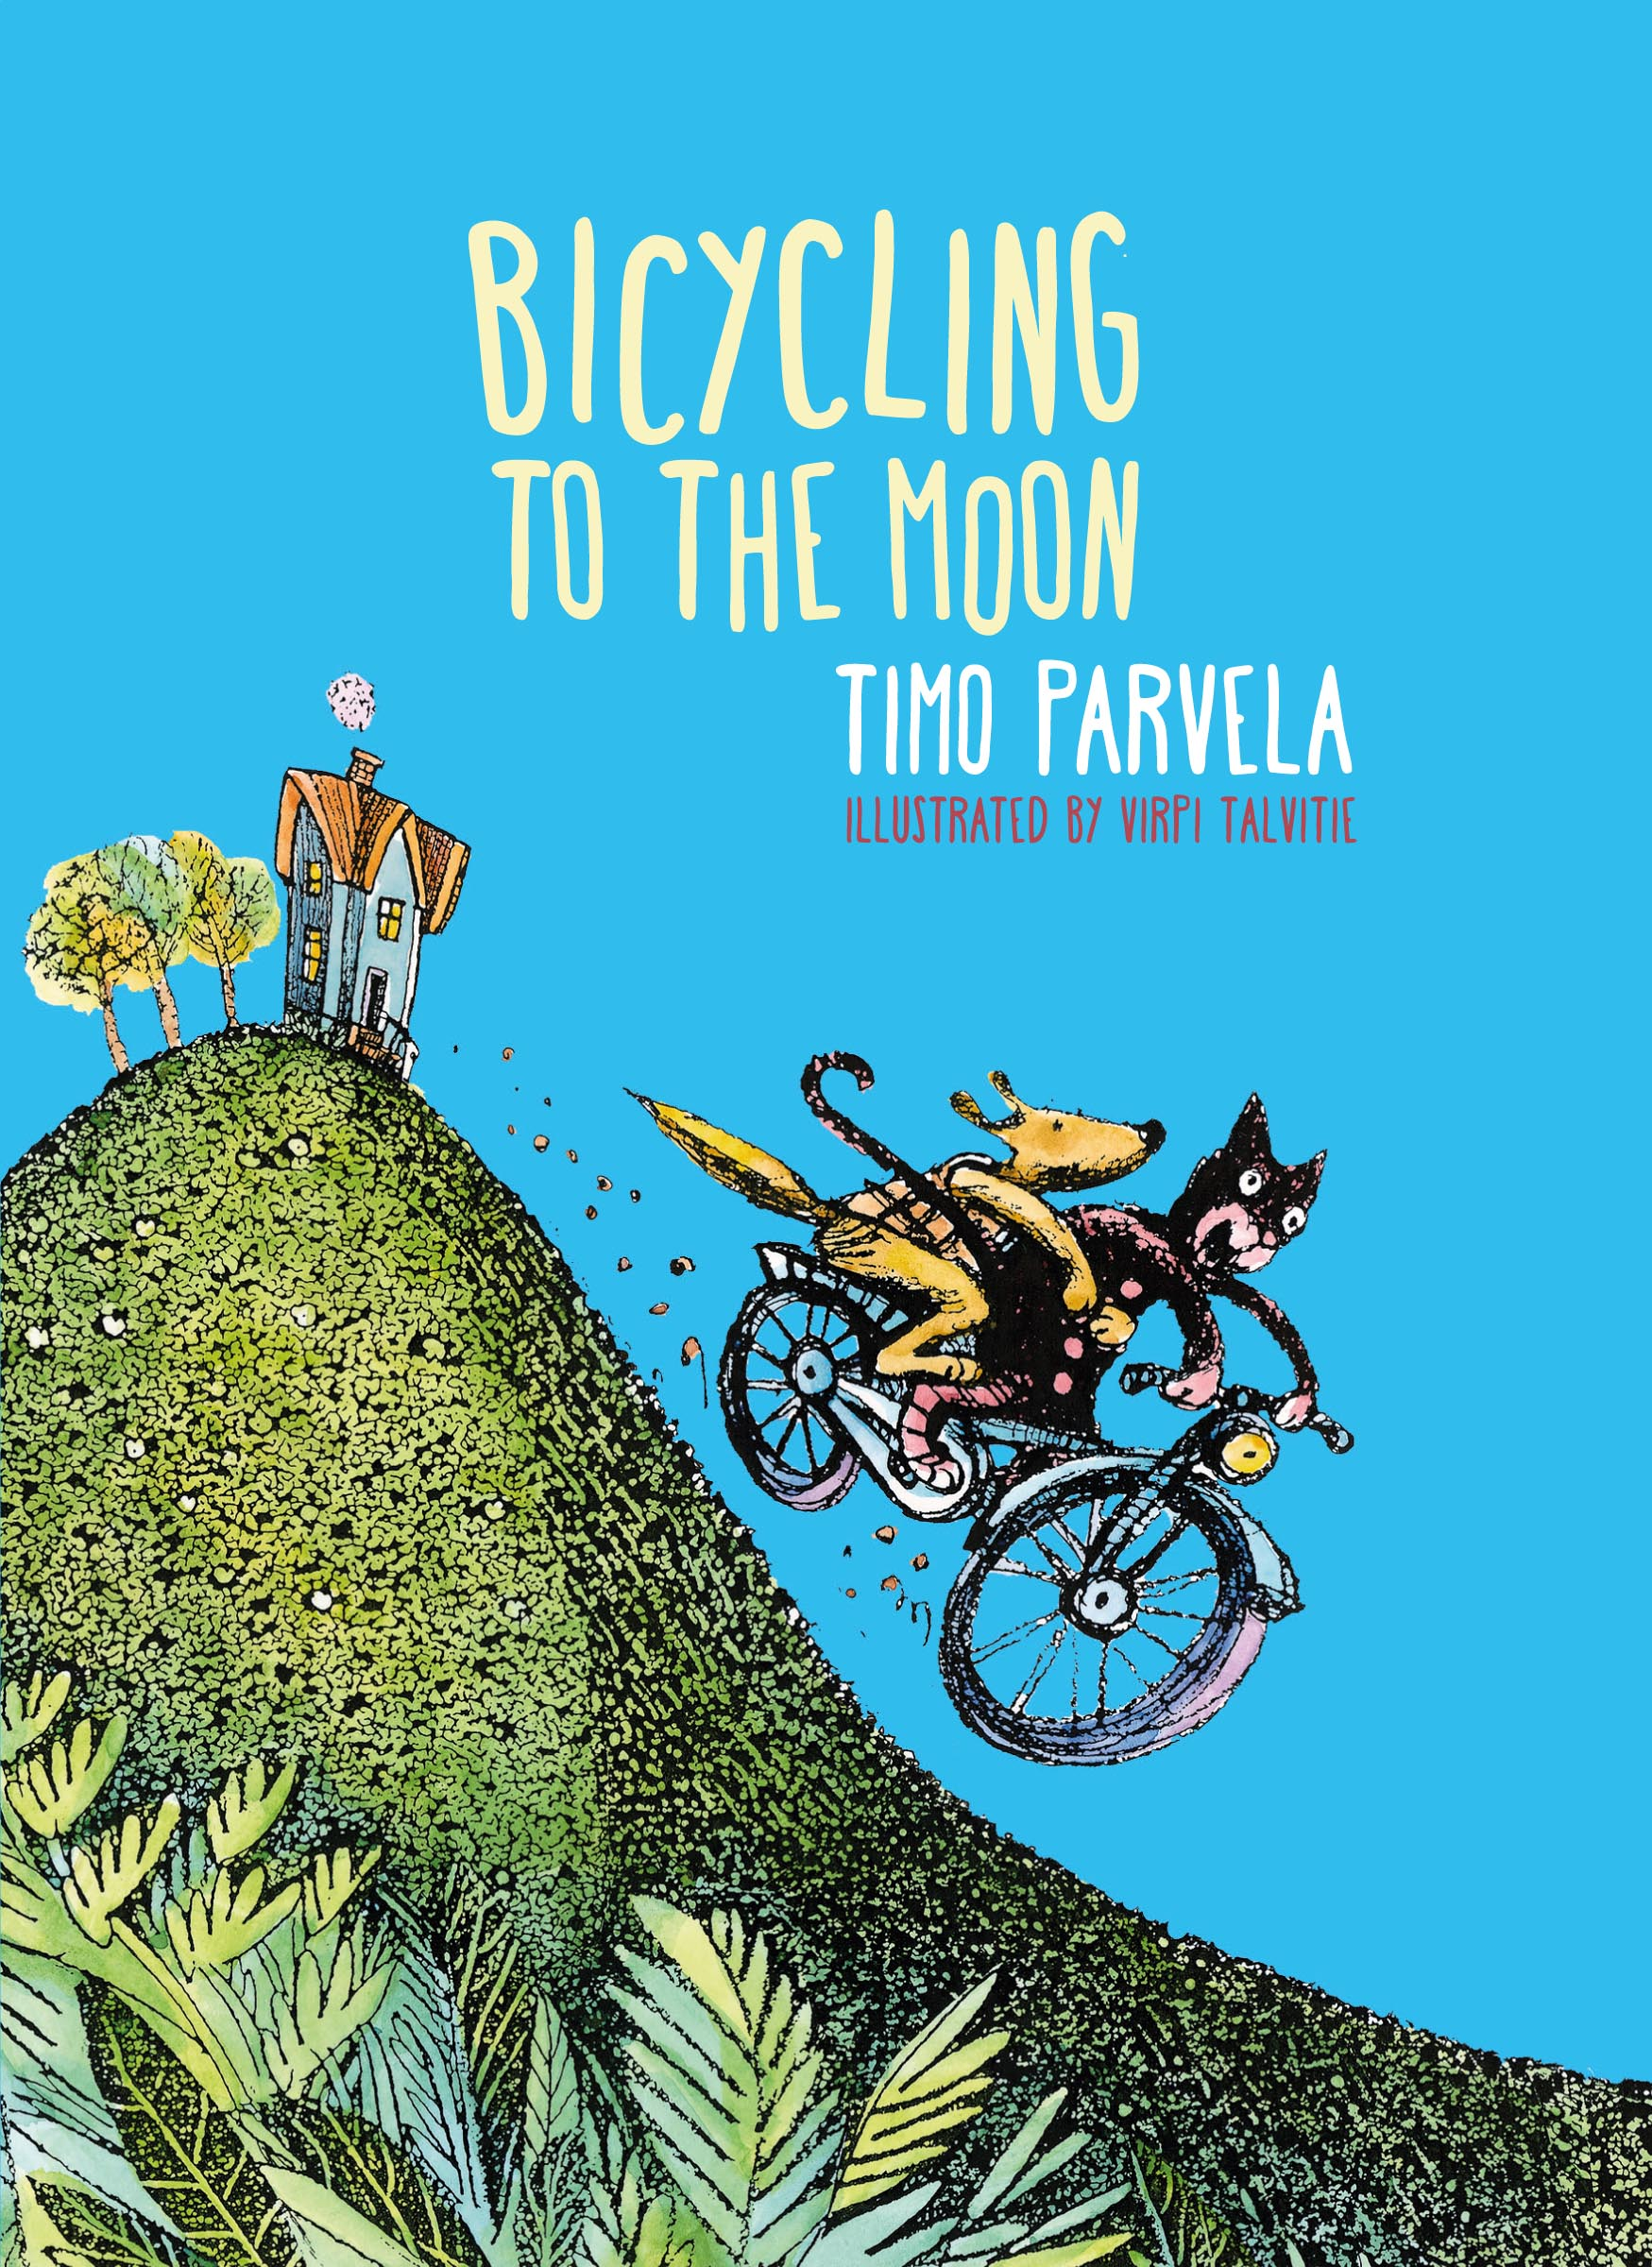 Bicycling to the Moon by Timo Parvela